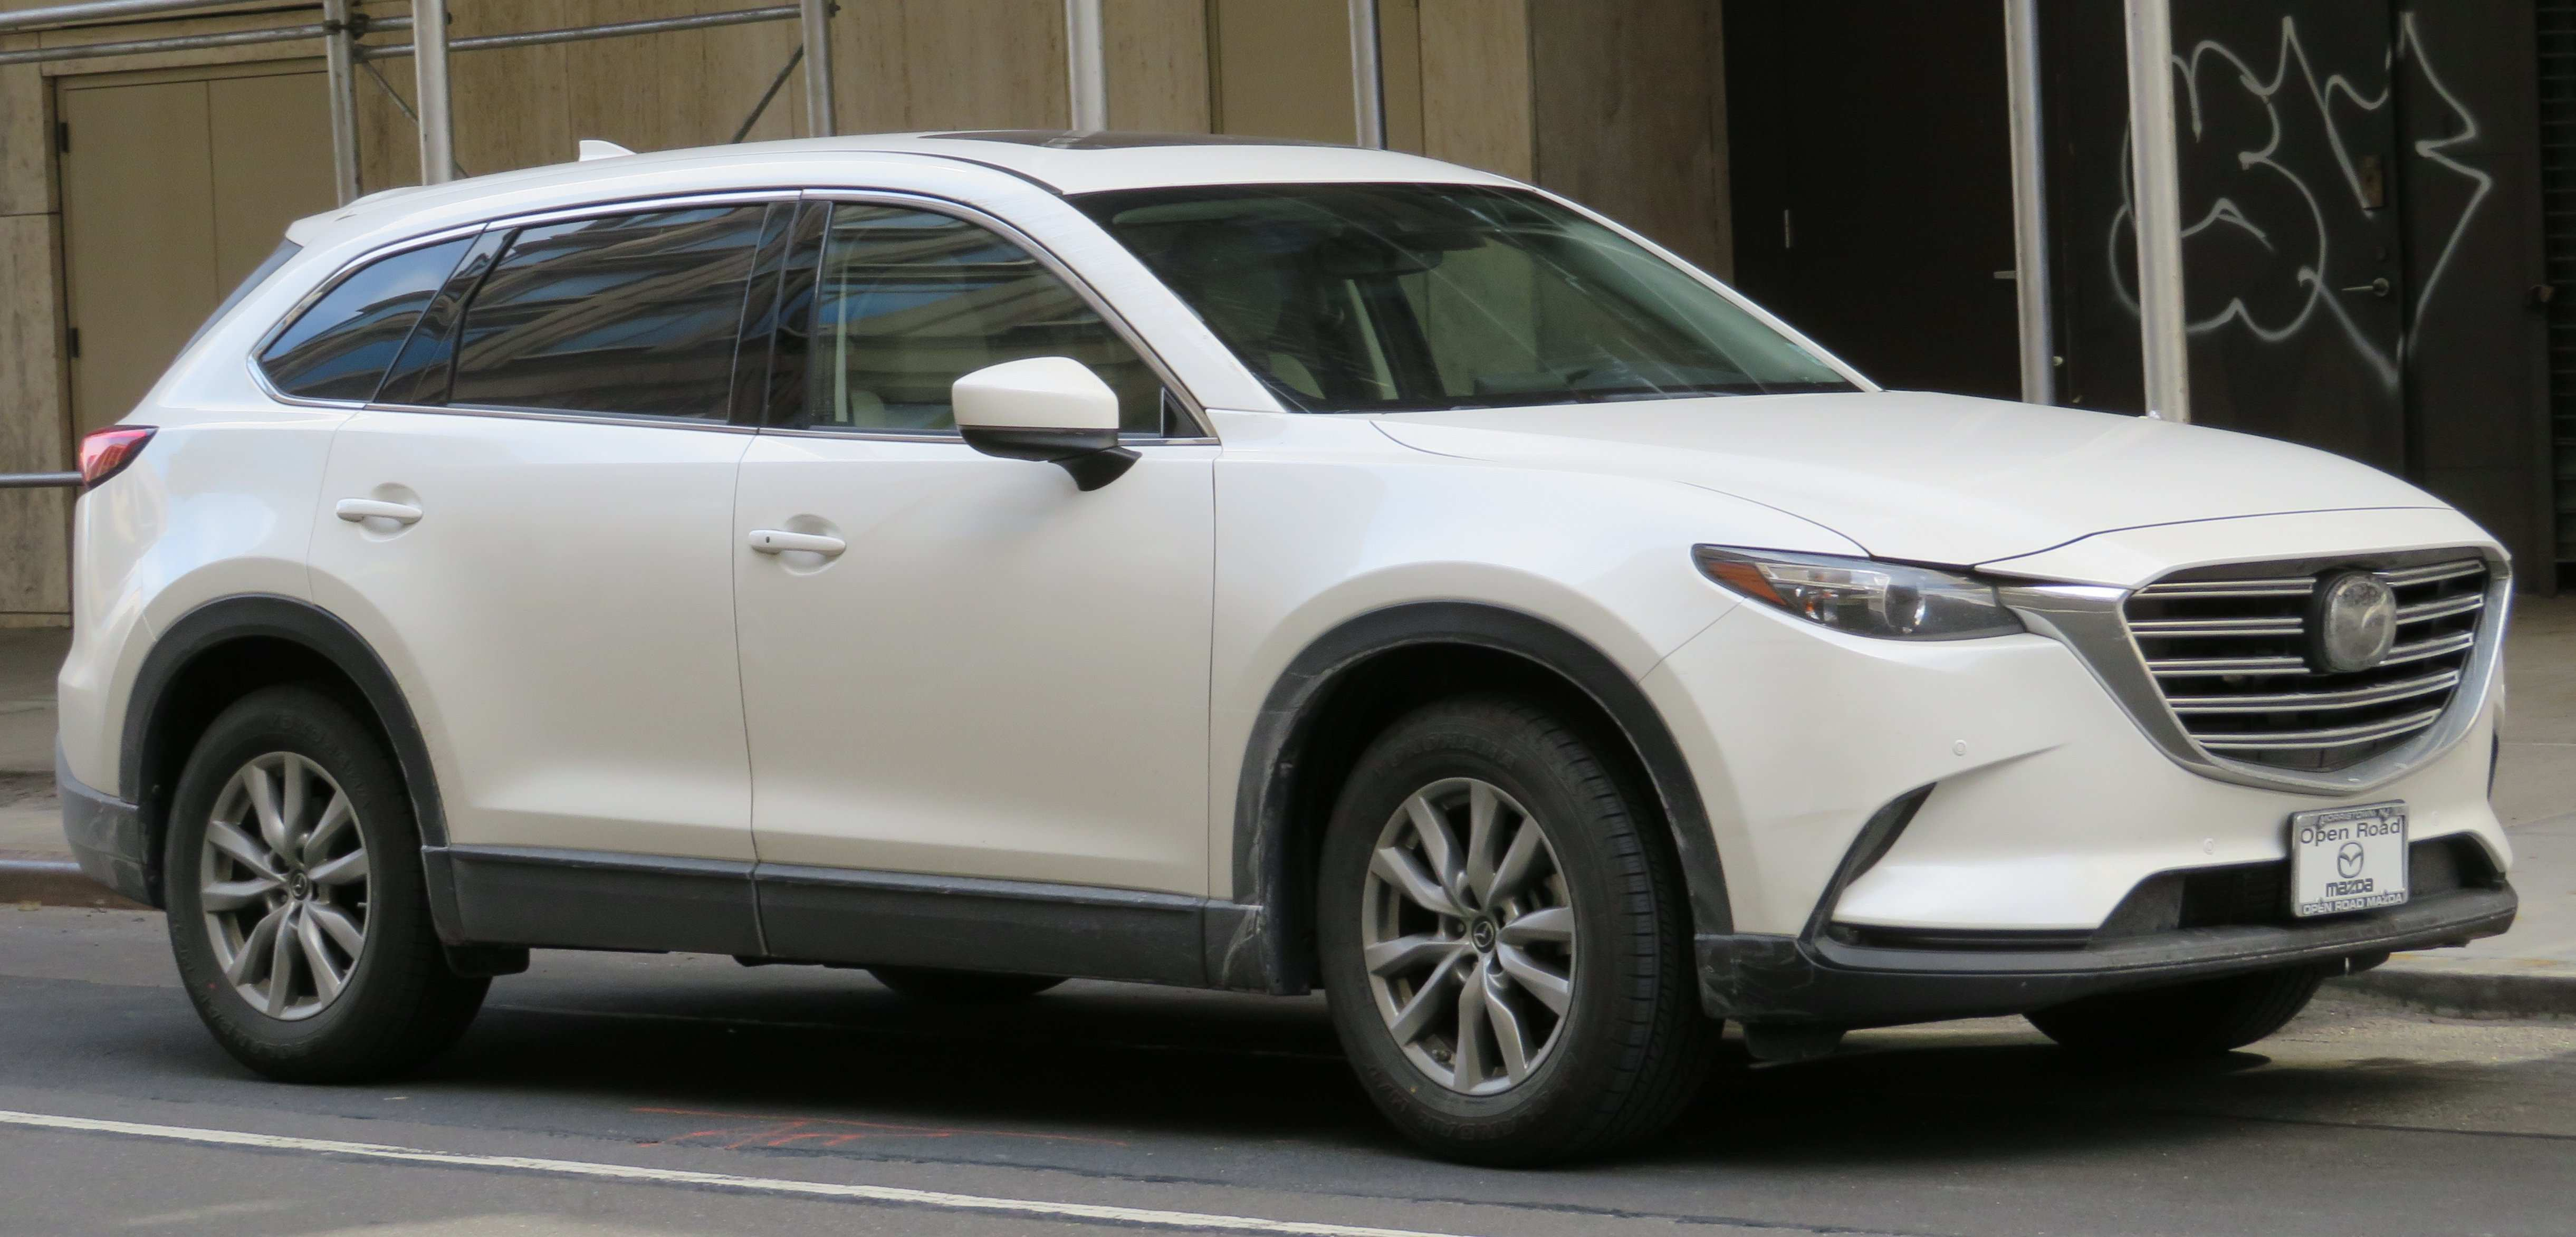 79 The Mazda Cx 9 2020 Release Date Photos for Mazda Cx 9 2020 Release Date